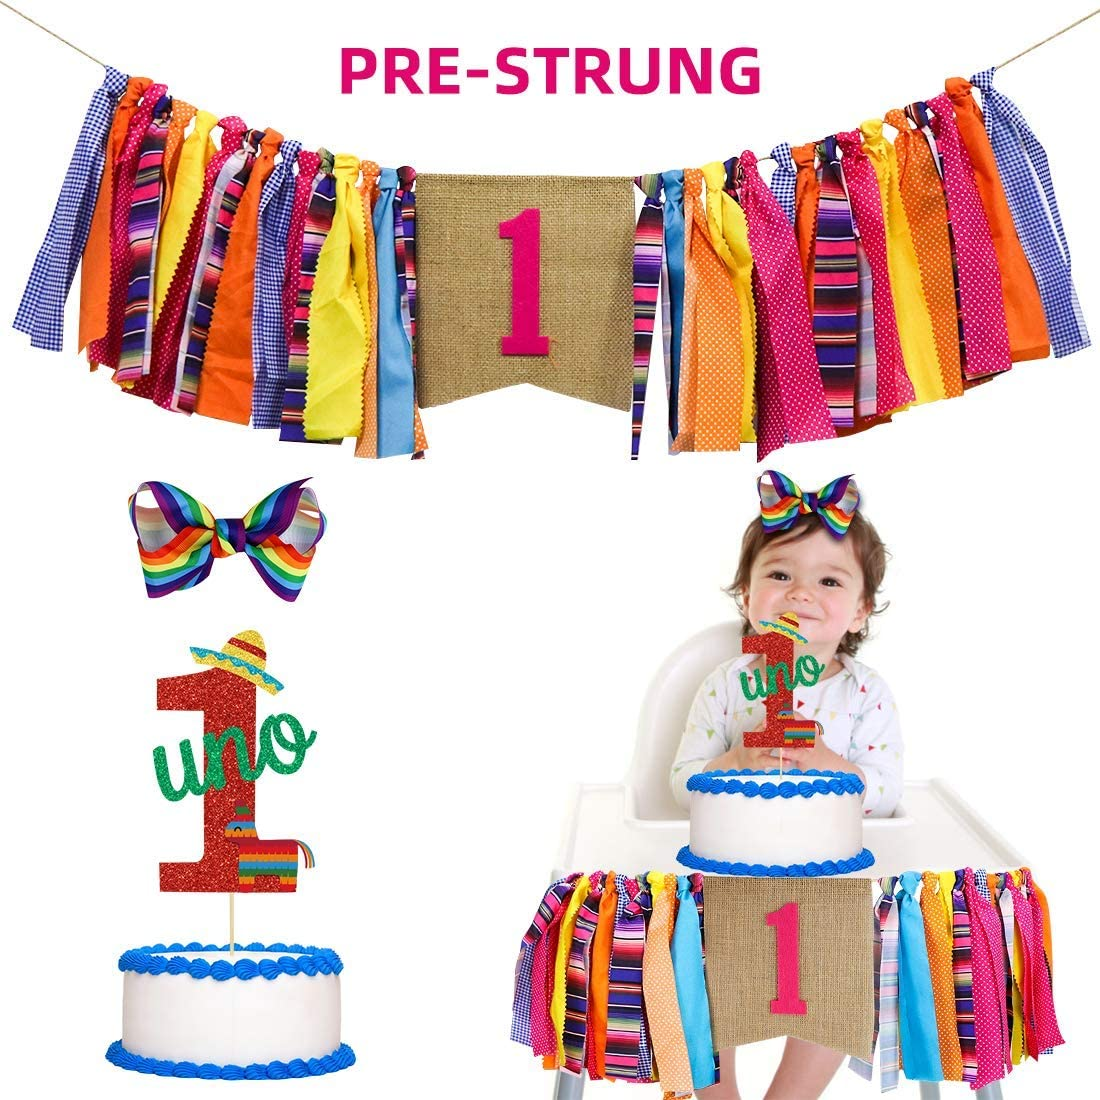 UTOPP Fiesta First Birthday Party Banner Mexican 1st Birthday Highchair Banner UNO Glitter Cake Topper and hair bow for Cactus Taco Theme cake smash photo prop Baby Shower Party Decorations